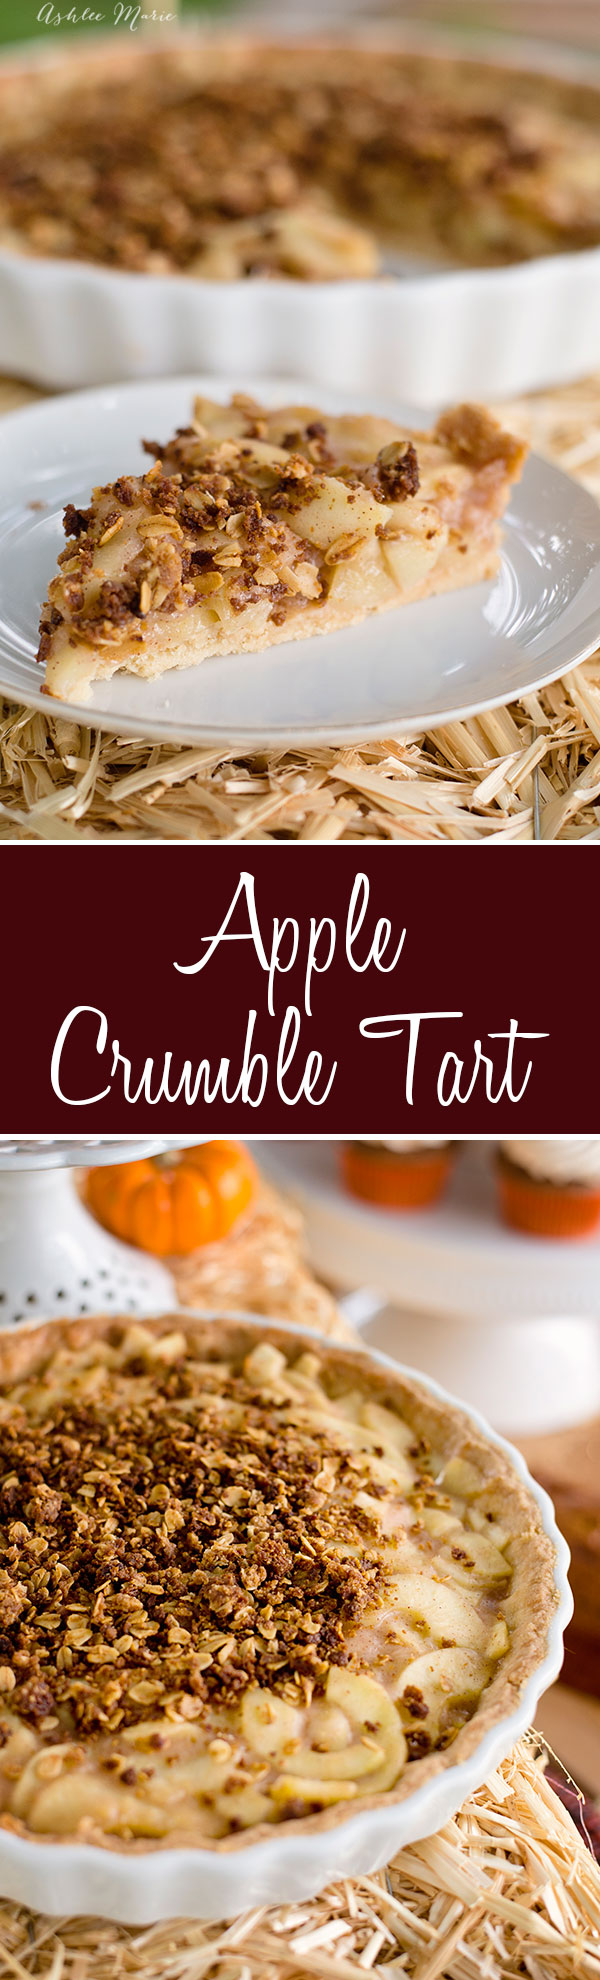 Similar to an apple pie in flavor the tart crust, filling and crumble are all cooked separately then put together for a delicious dessert with a great crunch